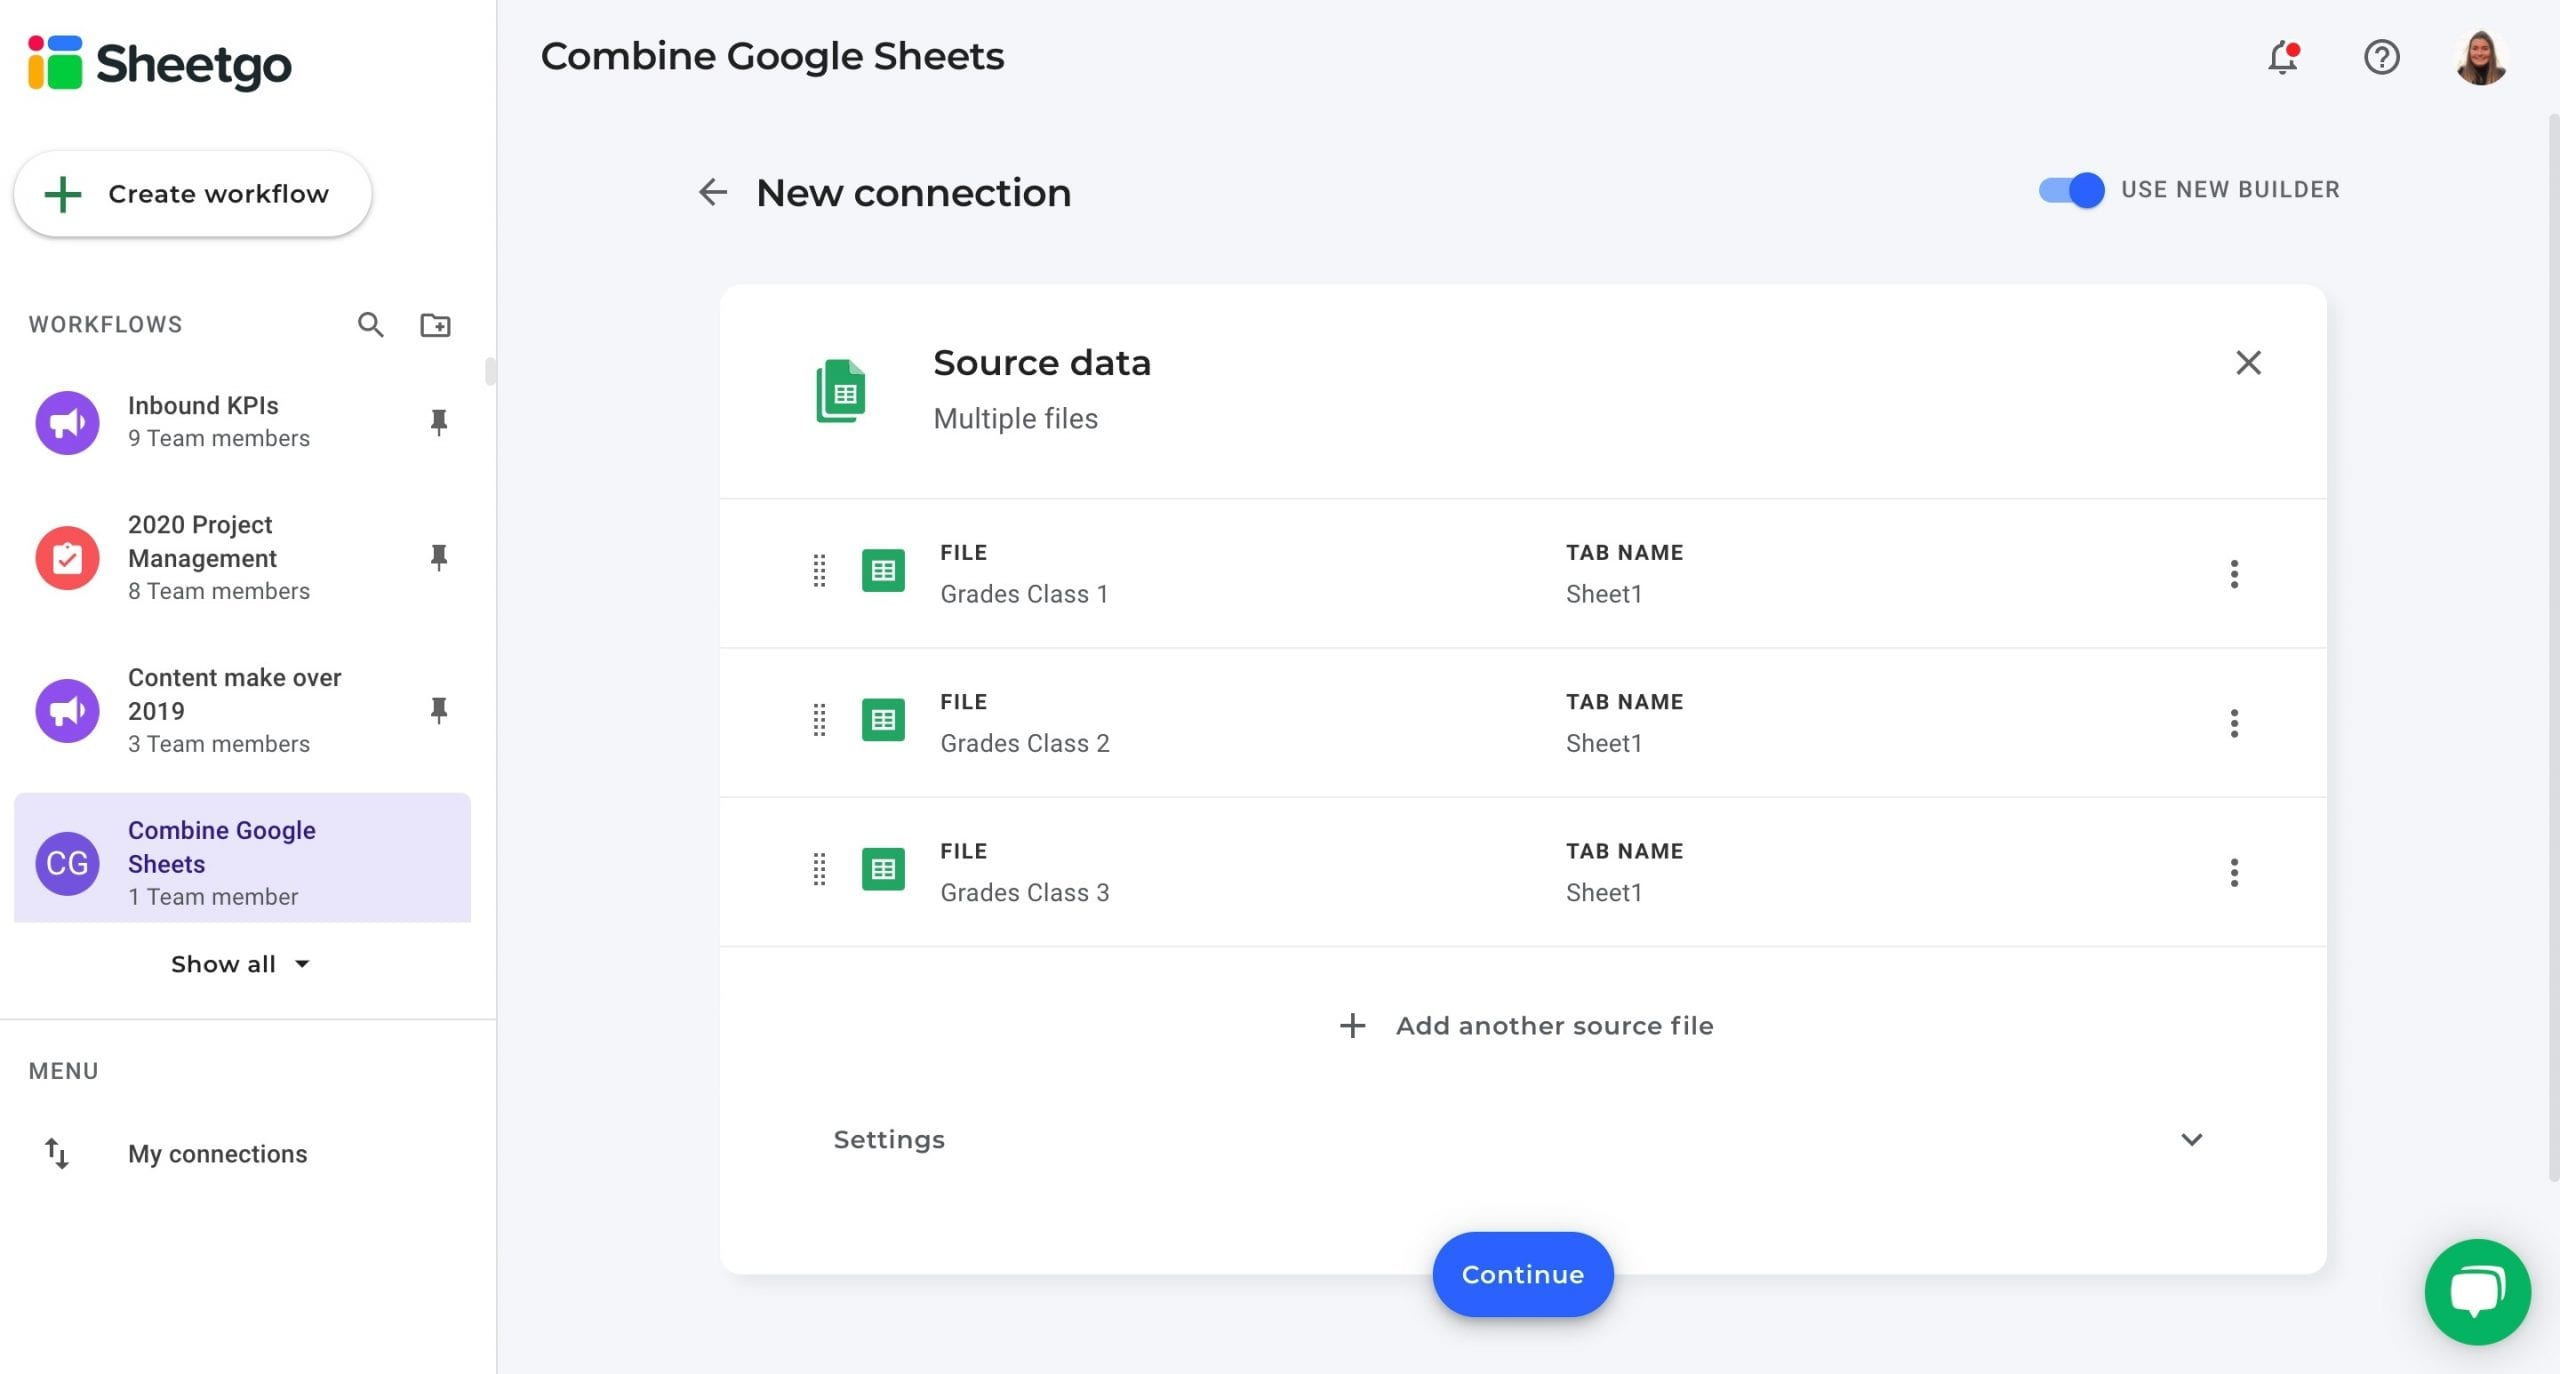 Combine Google Sheets multiple files as data source